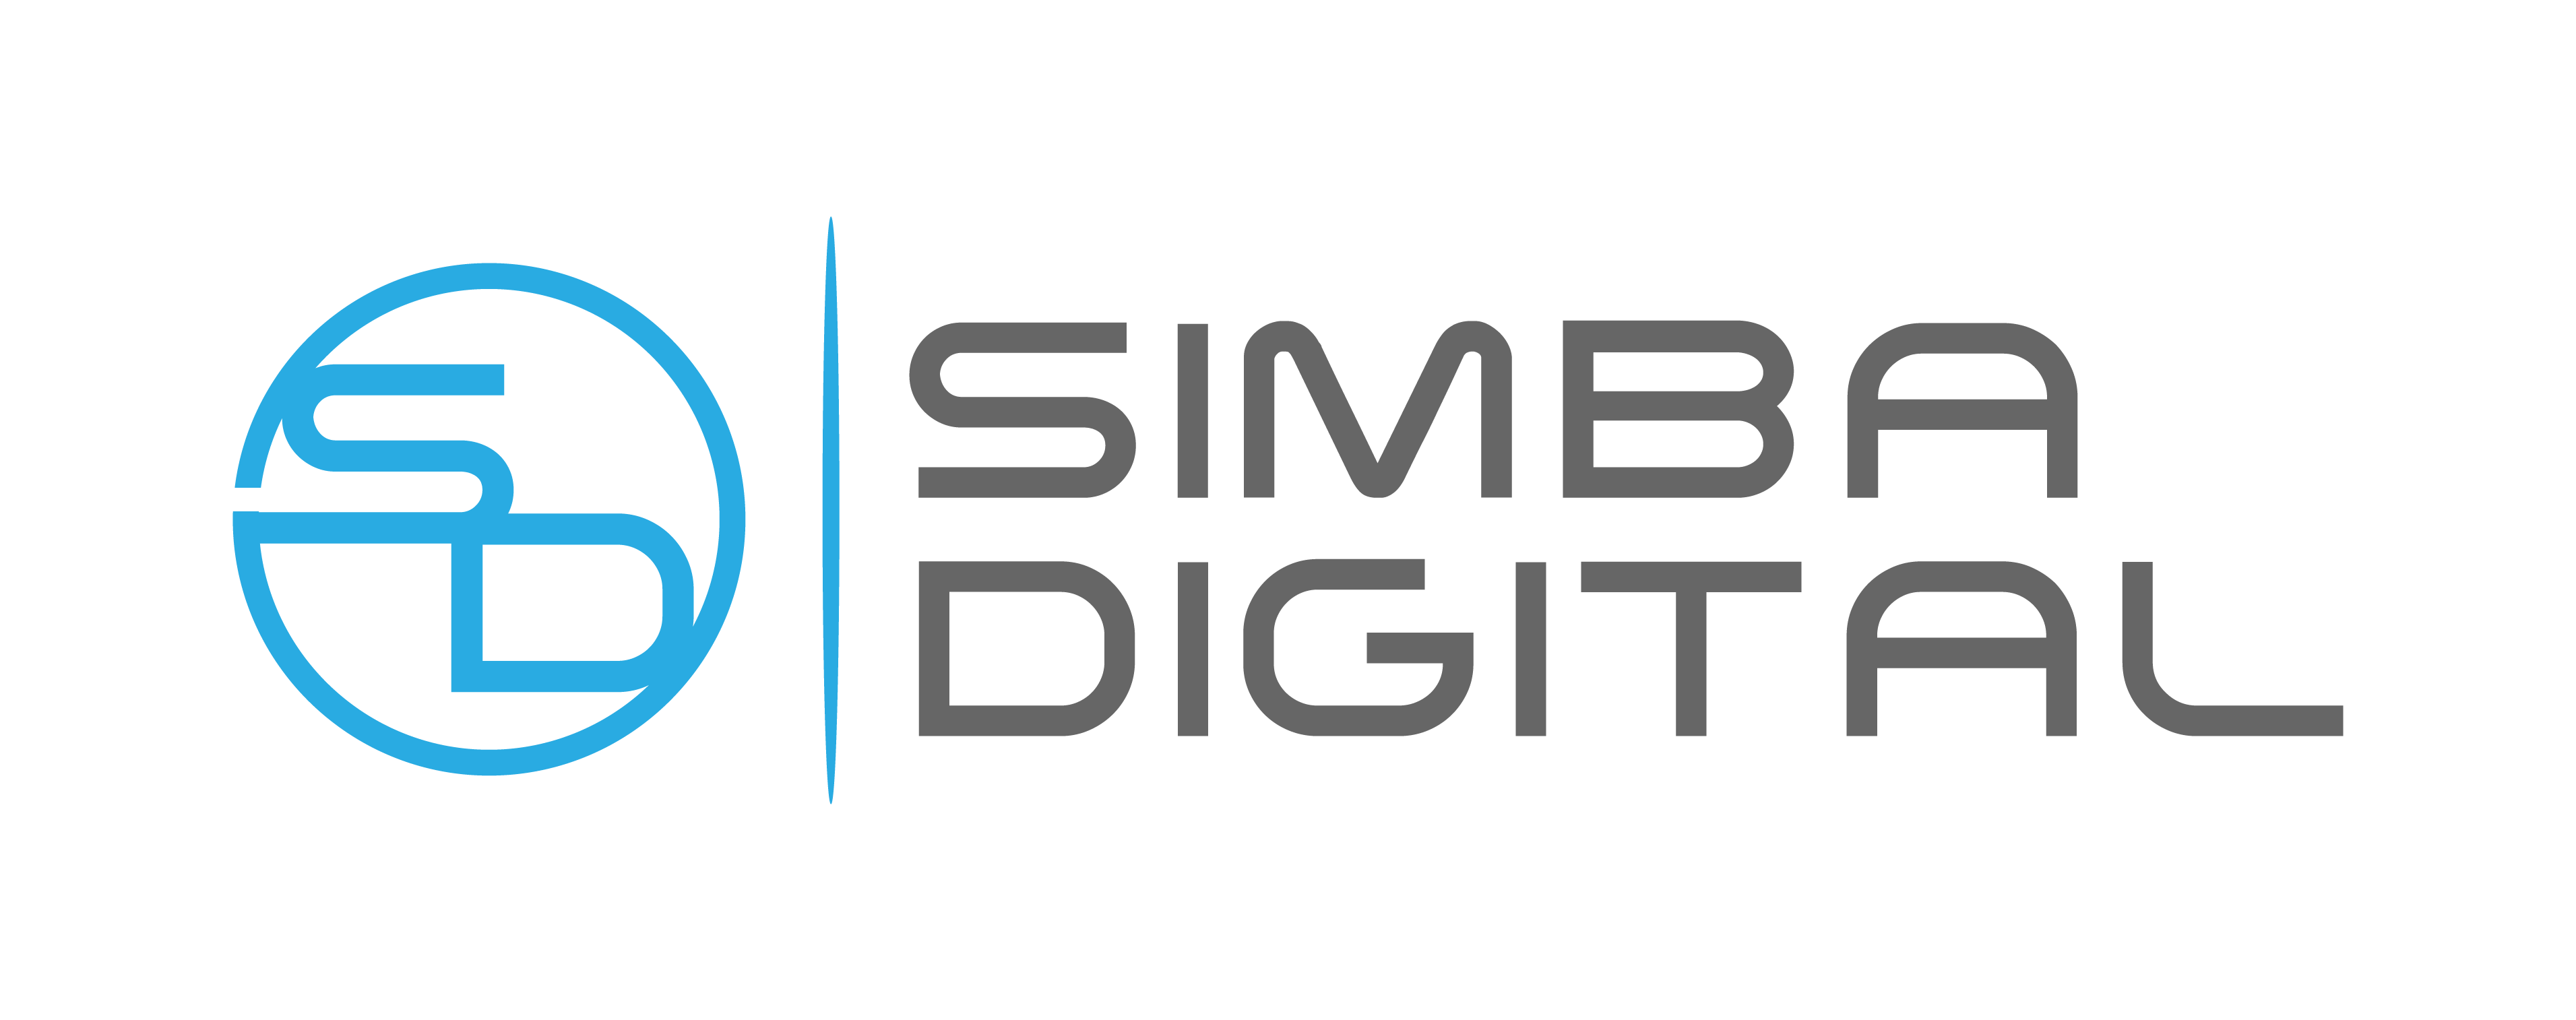 Simba Digital Marketing Logo